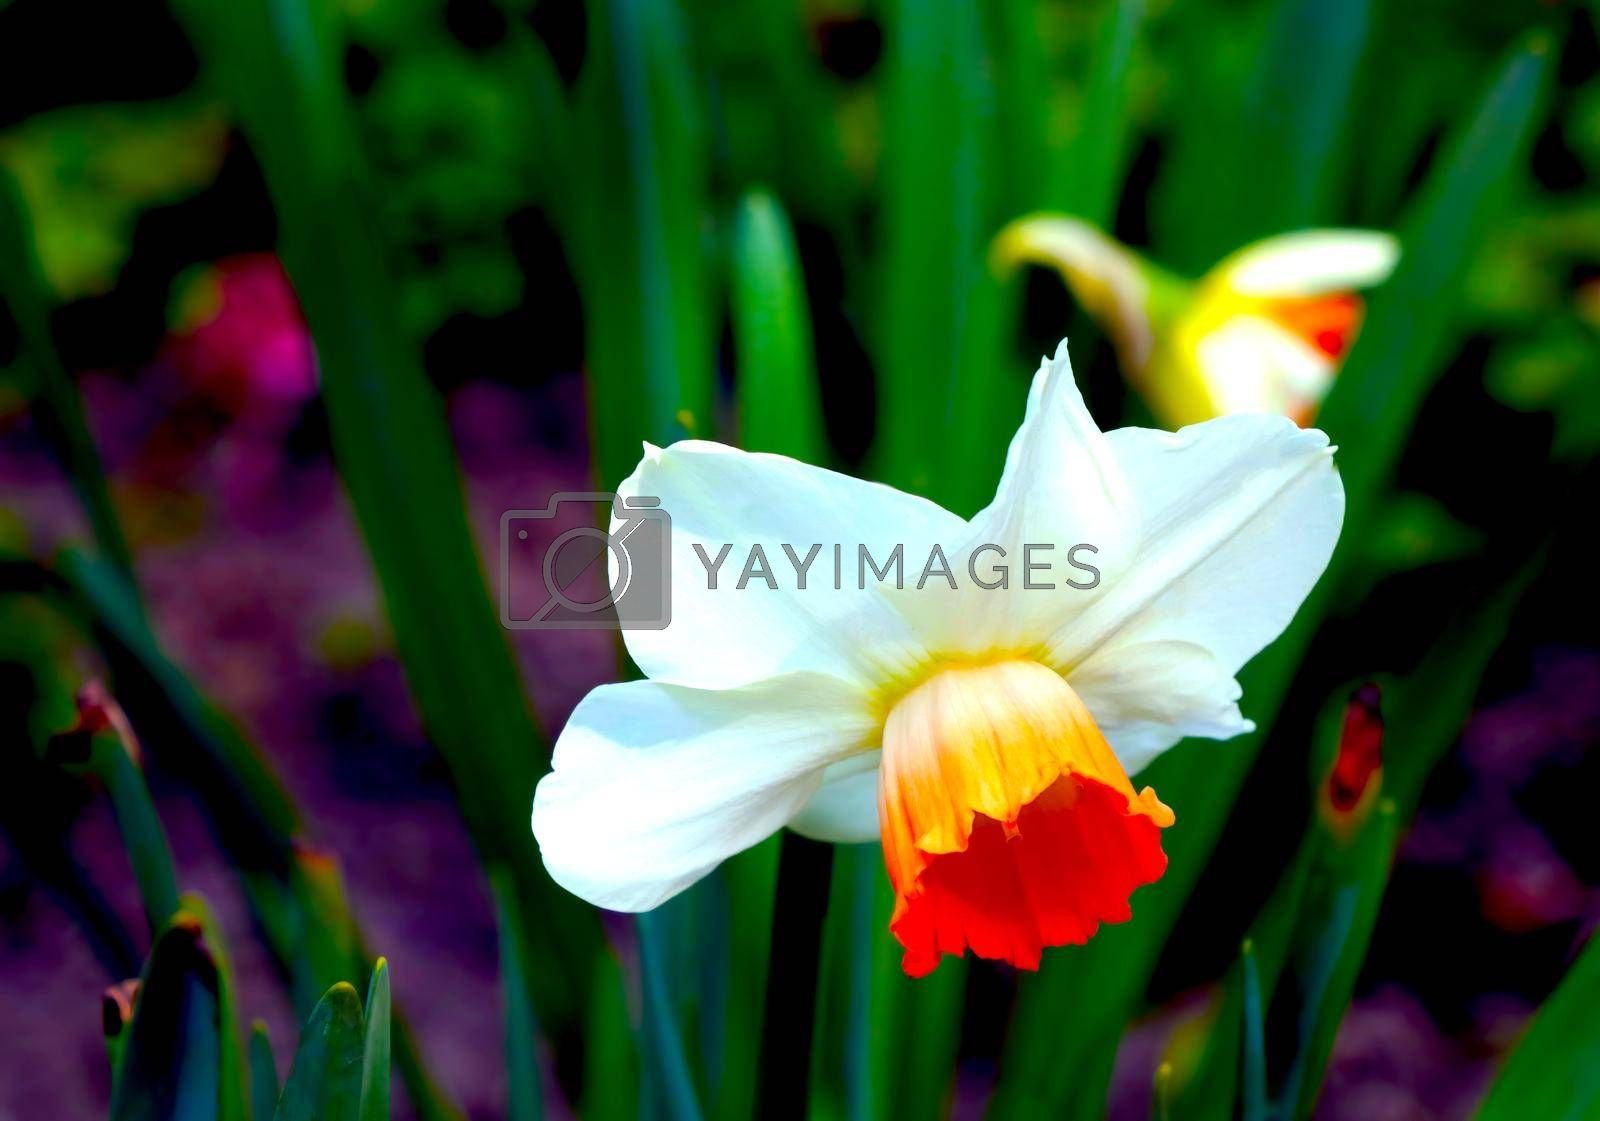 Royalty free image of Close-up on a blooming daffodil in the summer park. by kip02kas